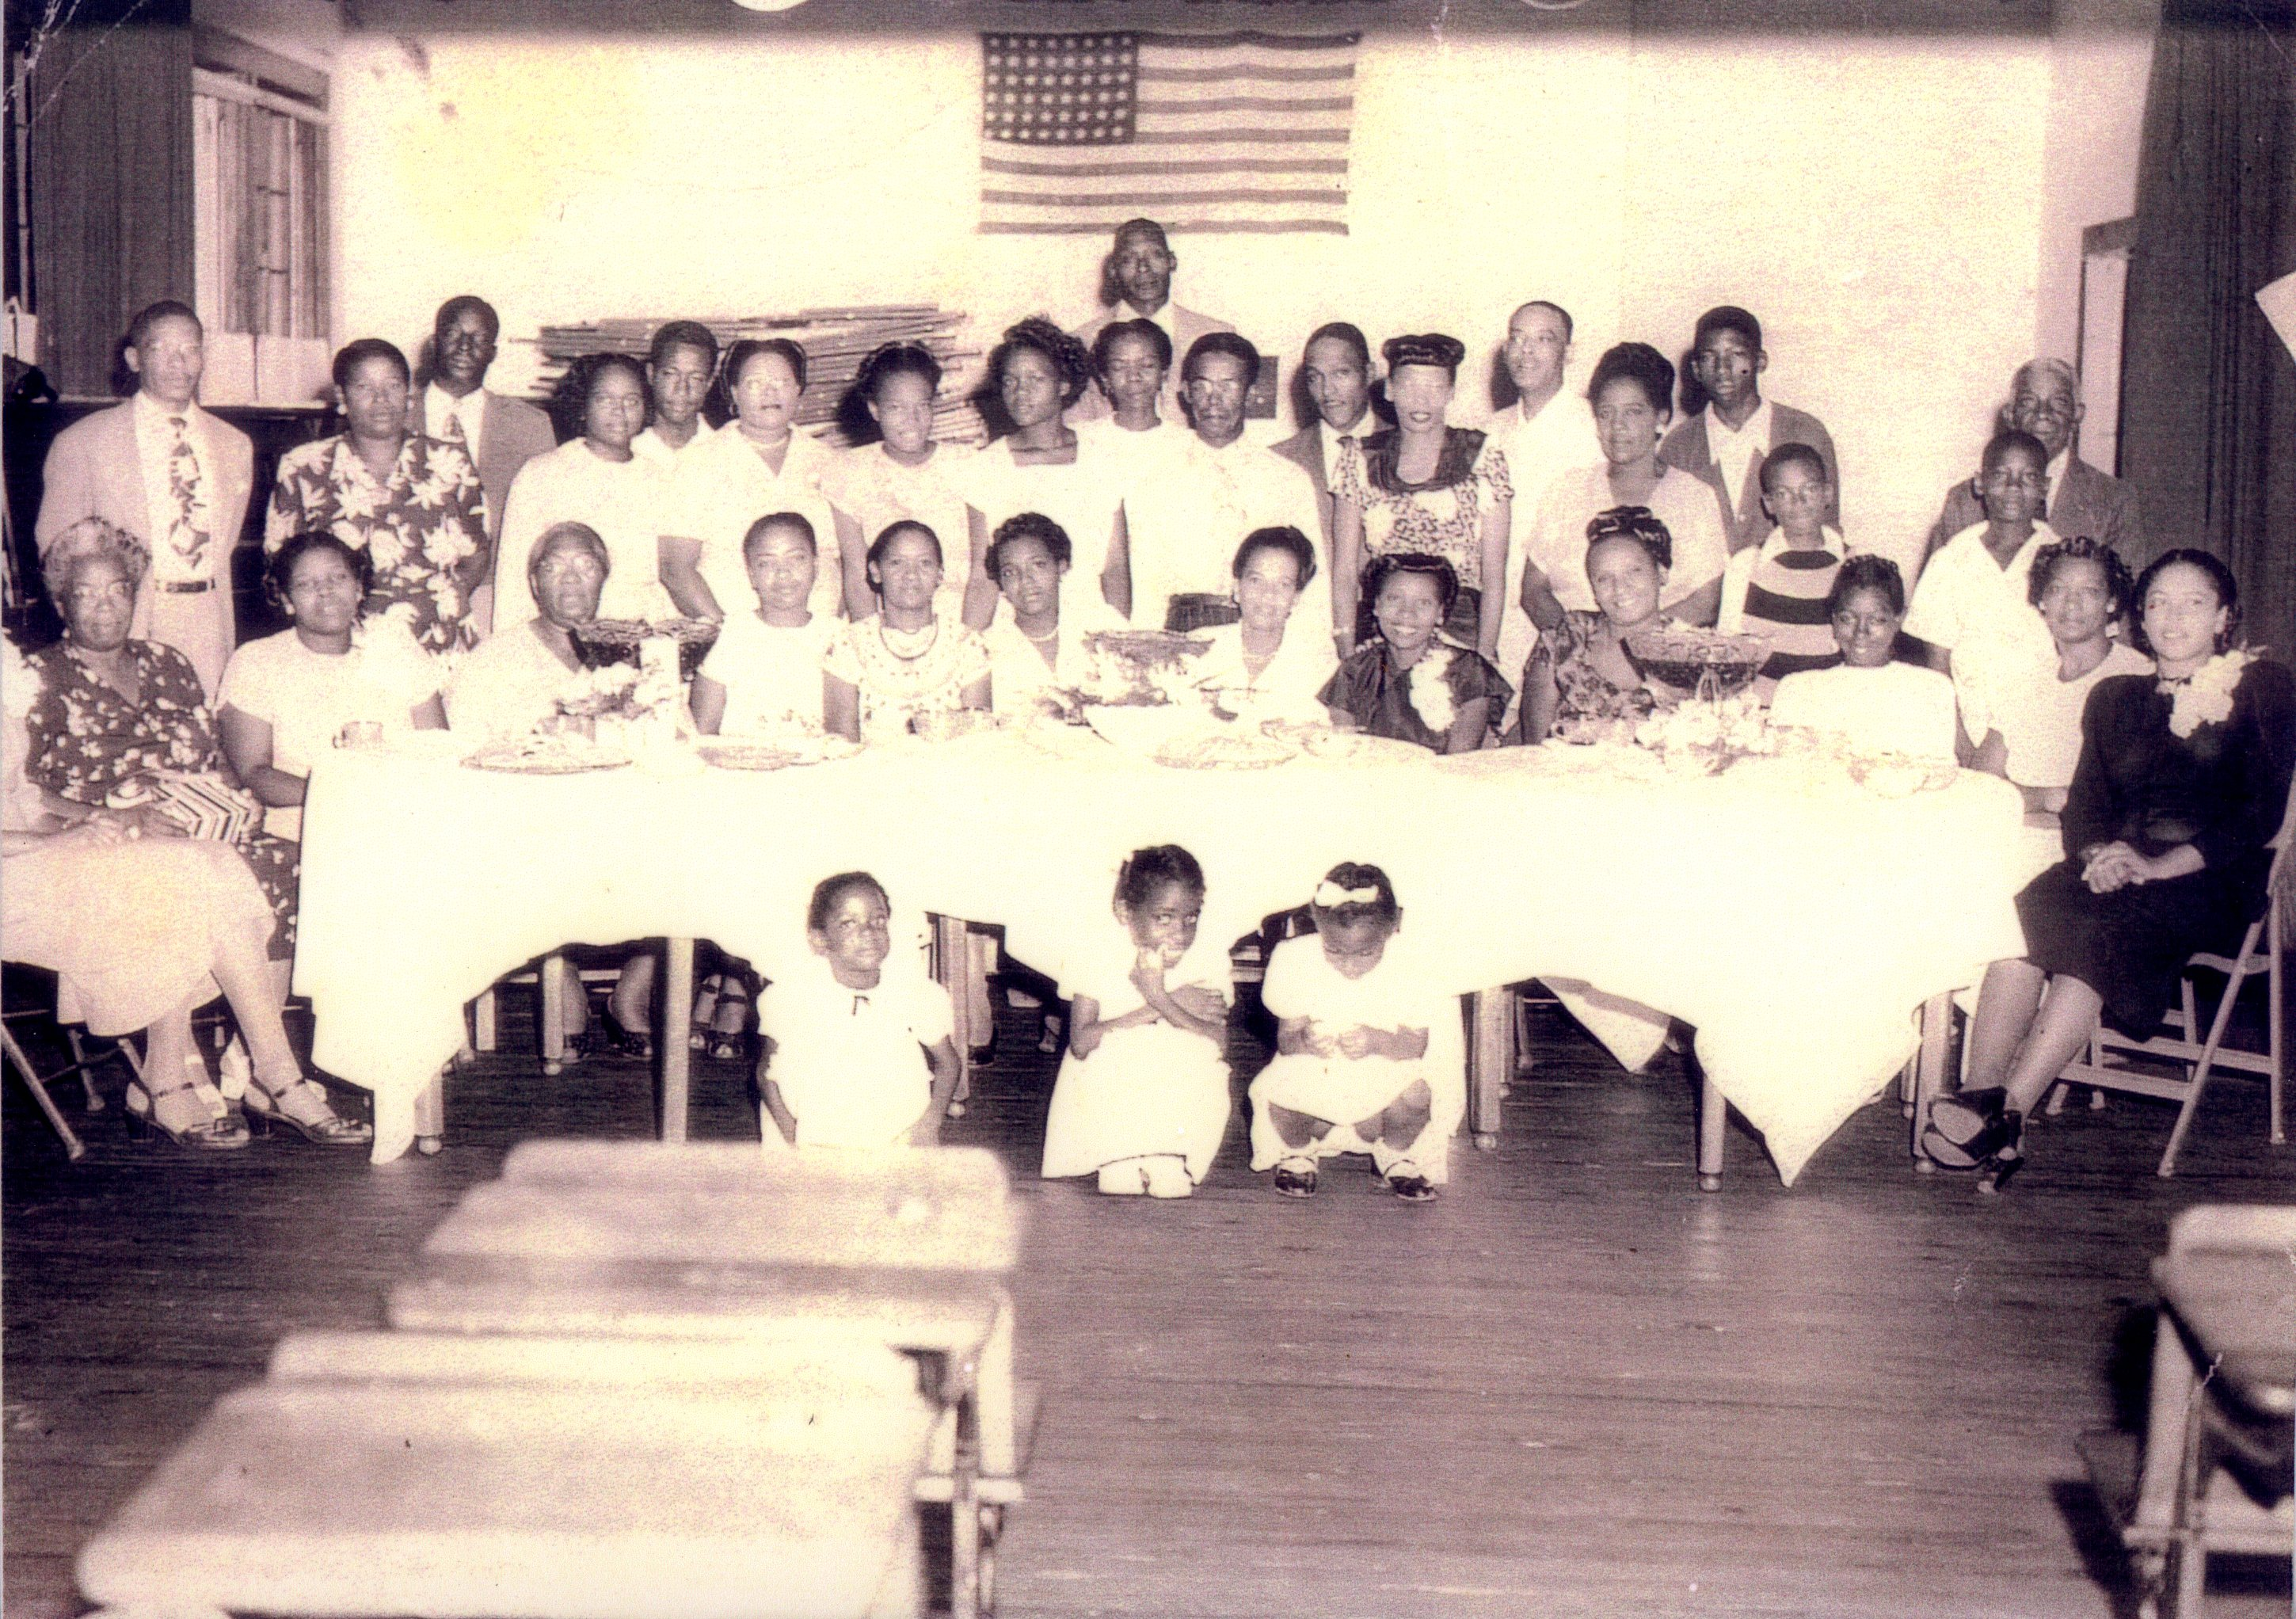 Union Academy PTA Appreciation Tea, Tarpon Springs, Florida, June 1948.